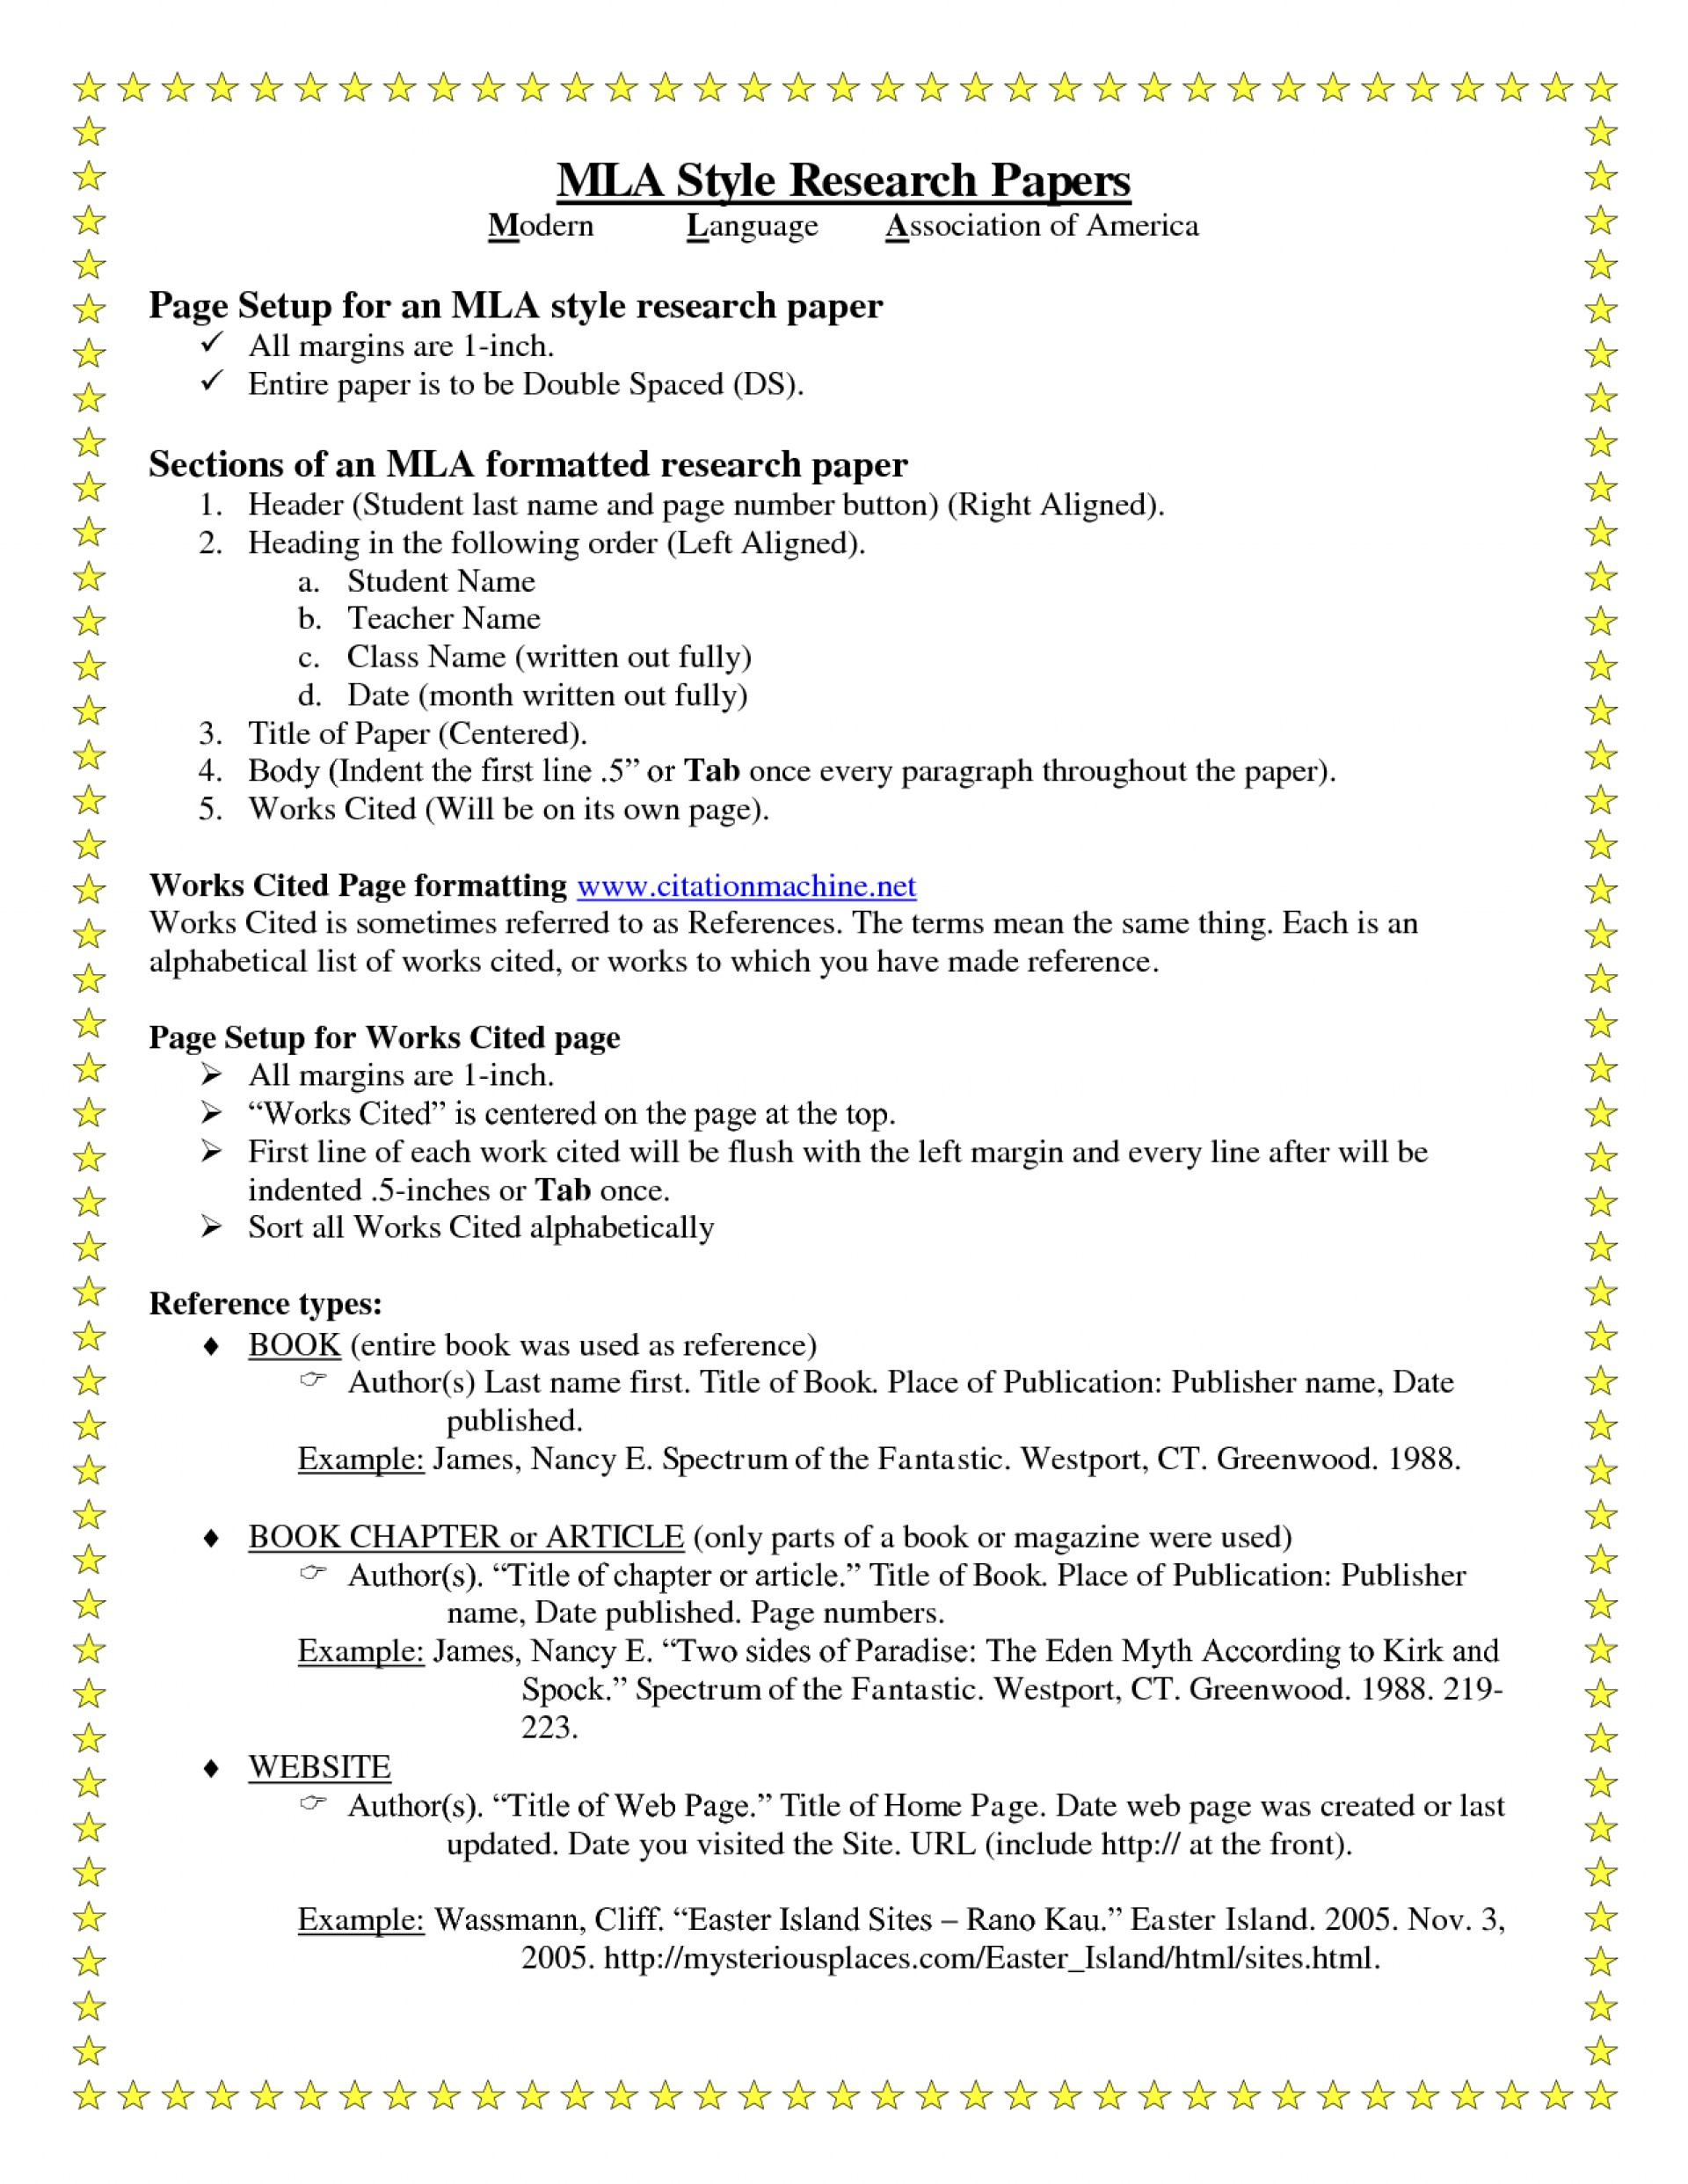 004 Research Paper Mla Format Section Headings Breathtaking Heading Spacing 1920